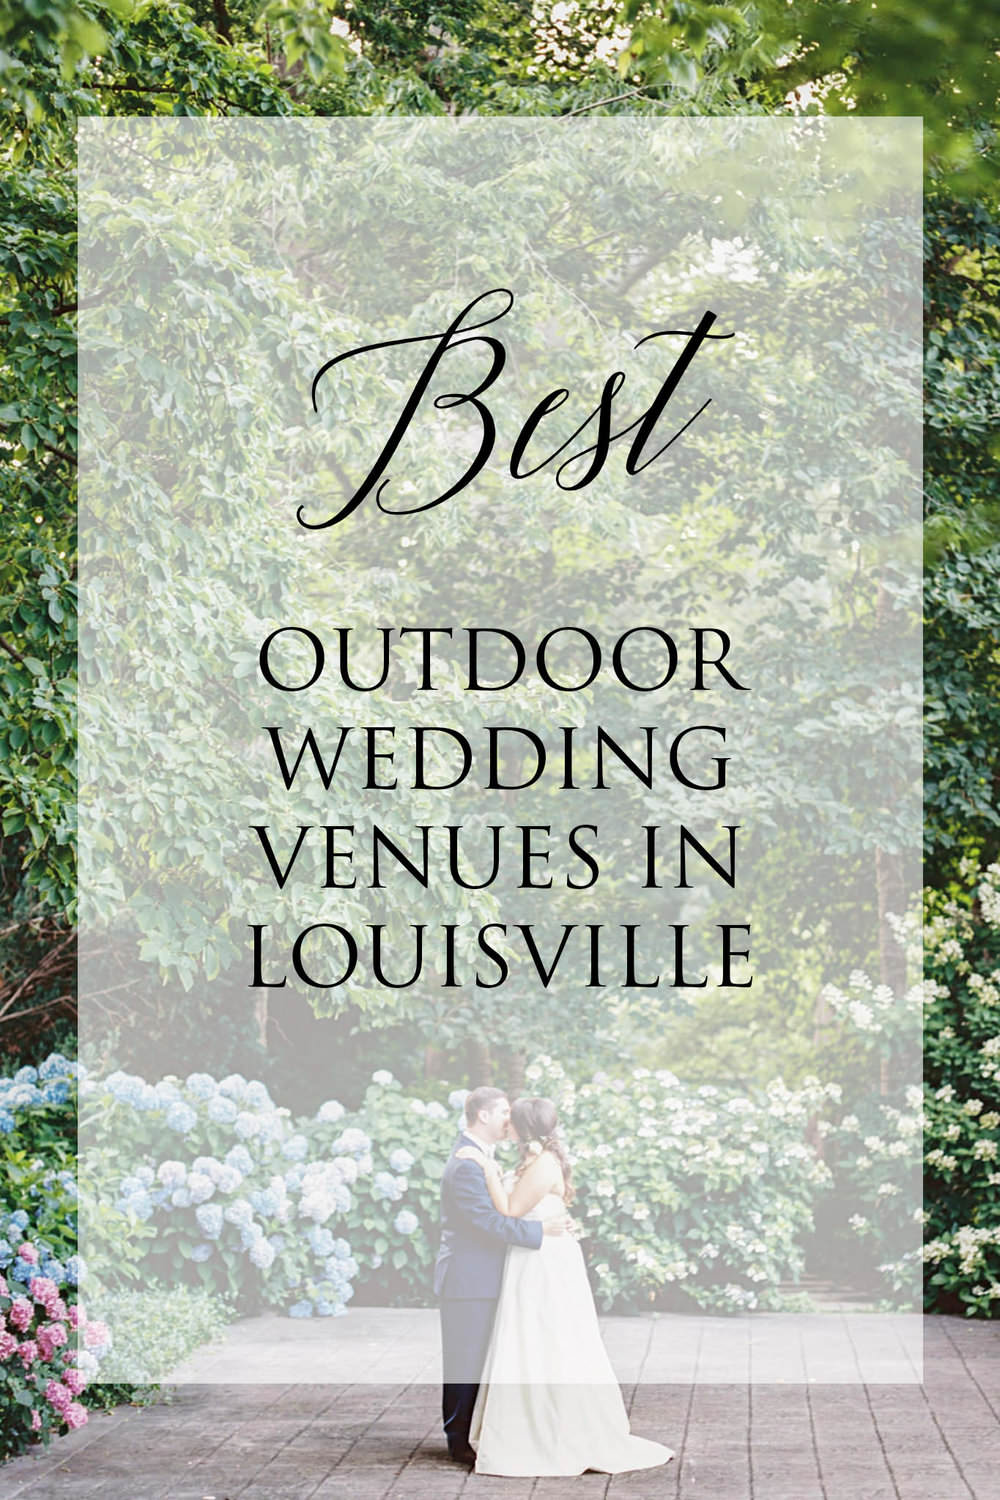 Louisville Wedding Venues Outdoors - If you're in the early stages of planning an outdoor wedding, we highly recommend taking a look at some of the prettiest outdoor wedding venues in Louisville Ky...read more